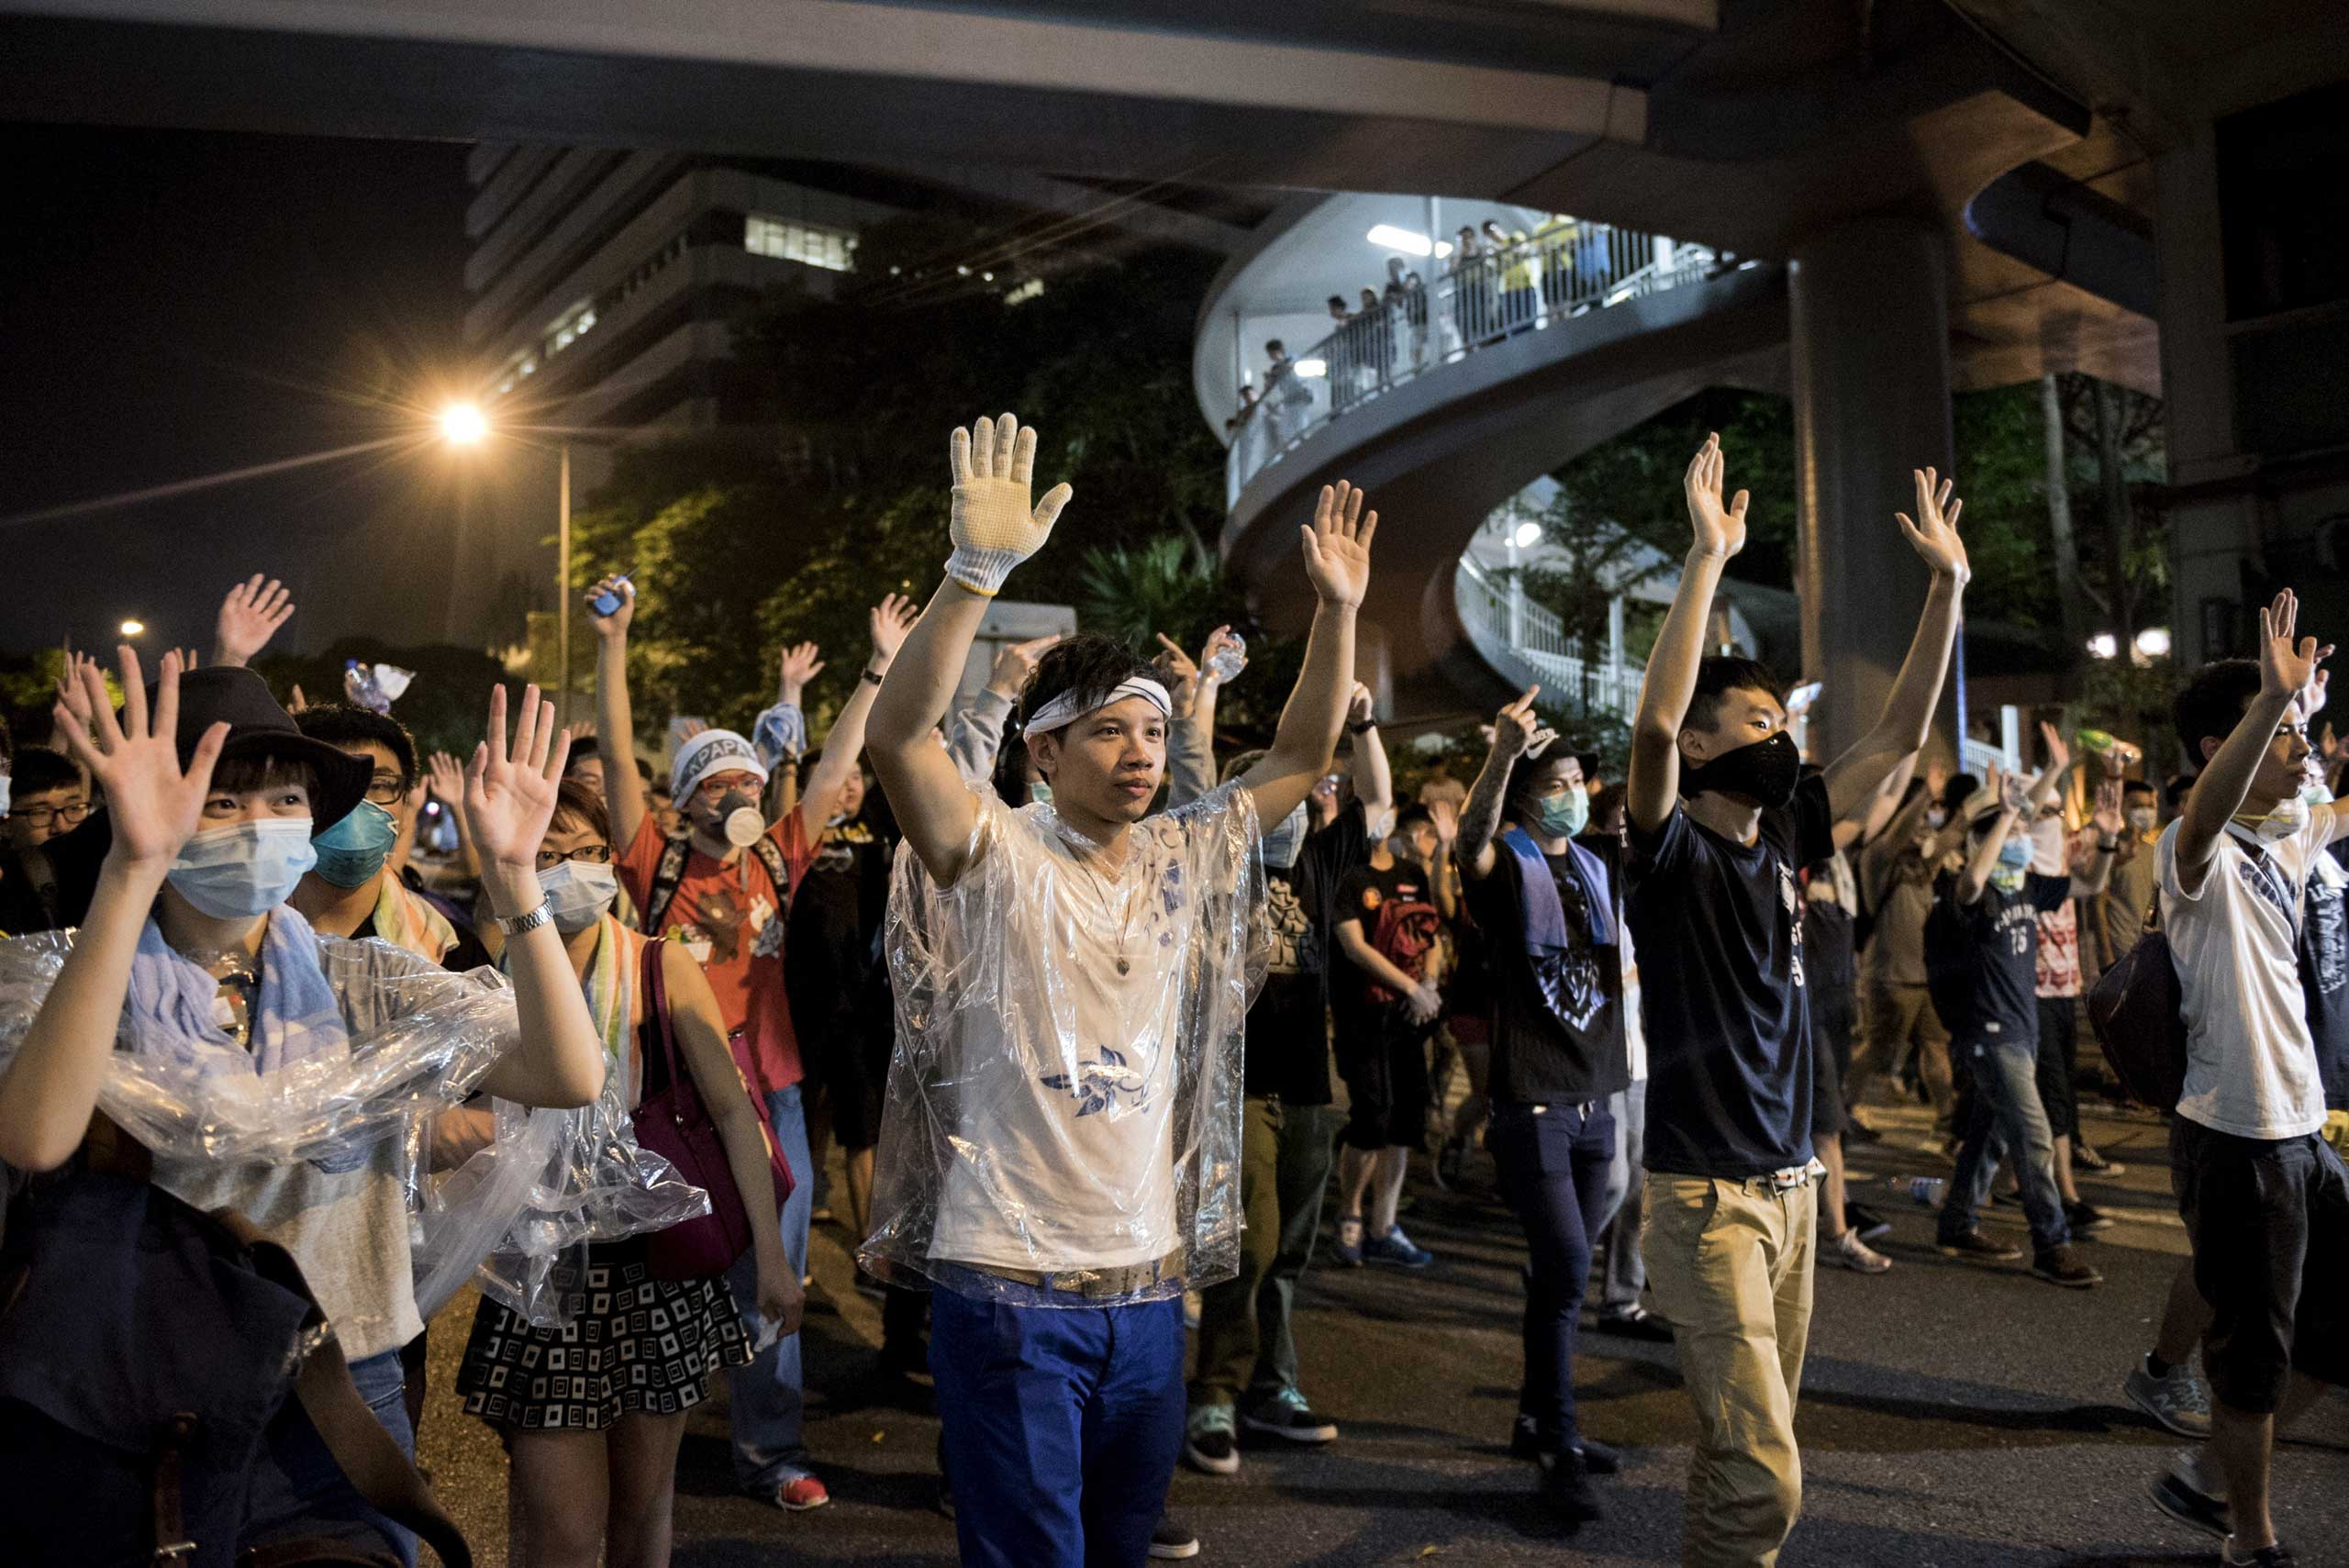 Pro-democracy protesters put their hands up in the air in front of the police in Hong Kong on Sept. 28, 2014